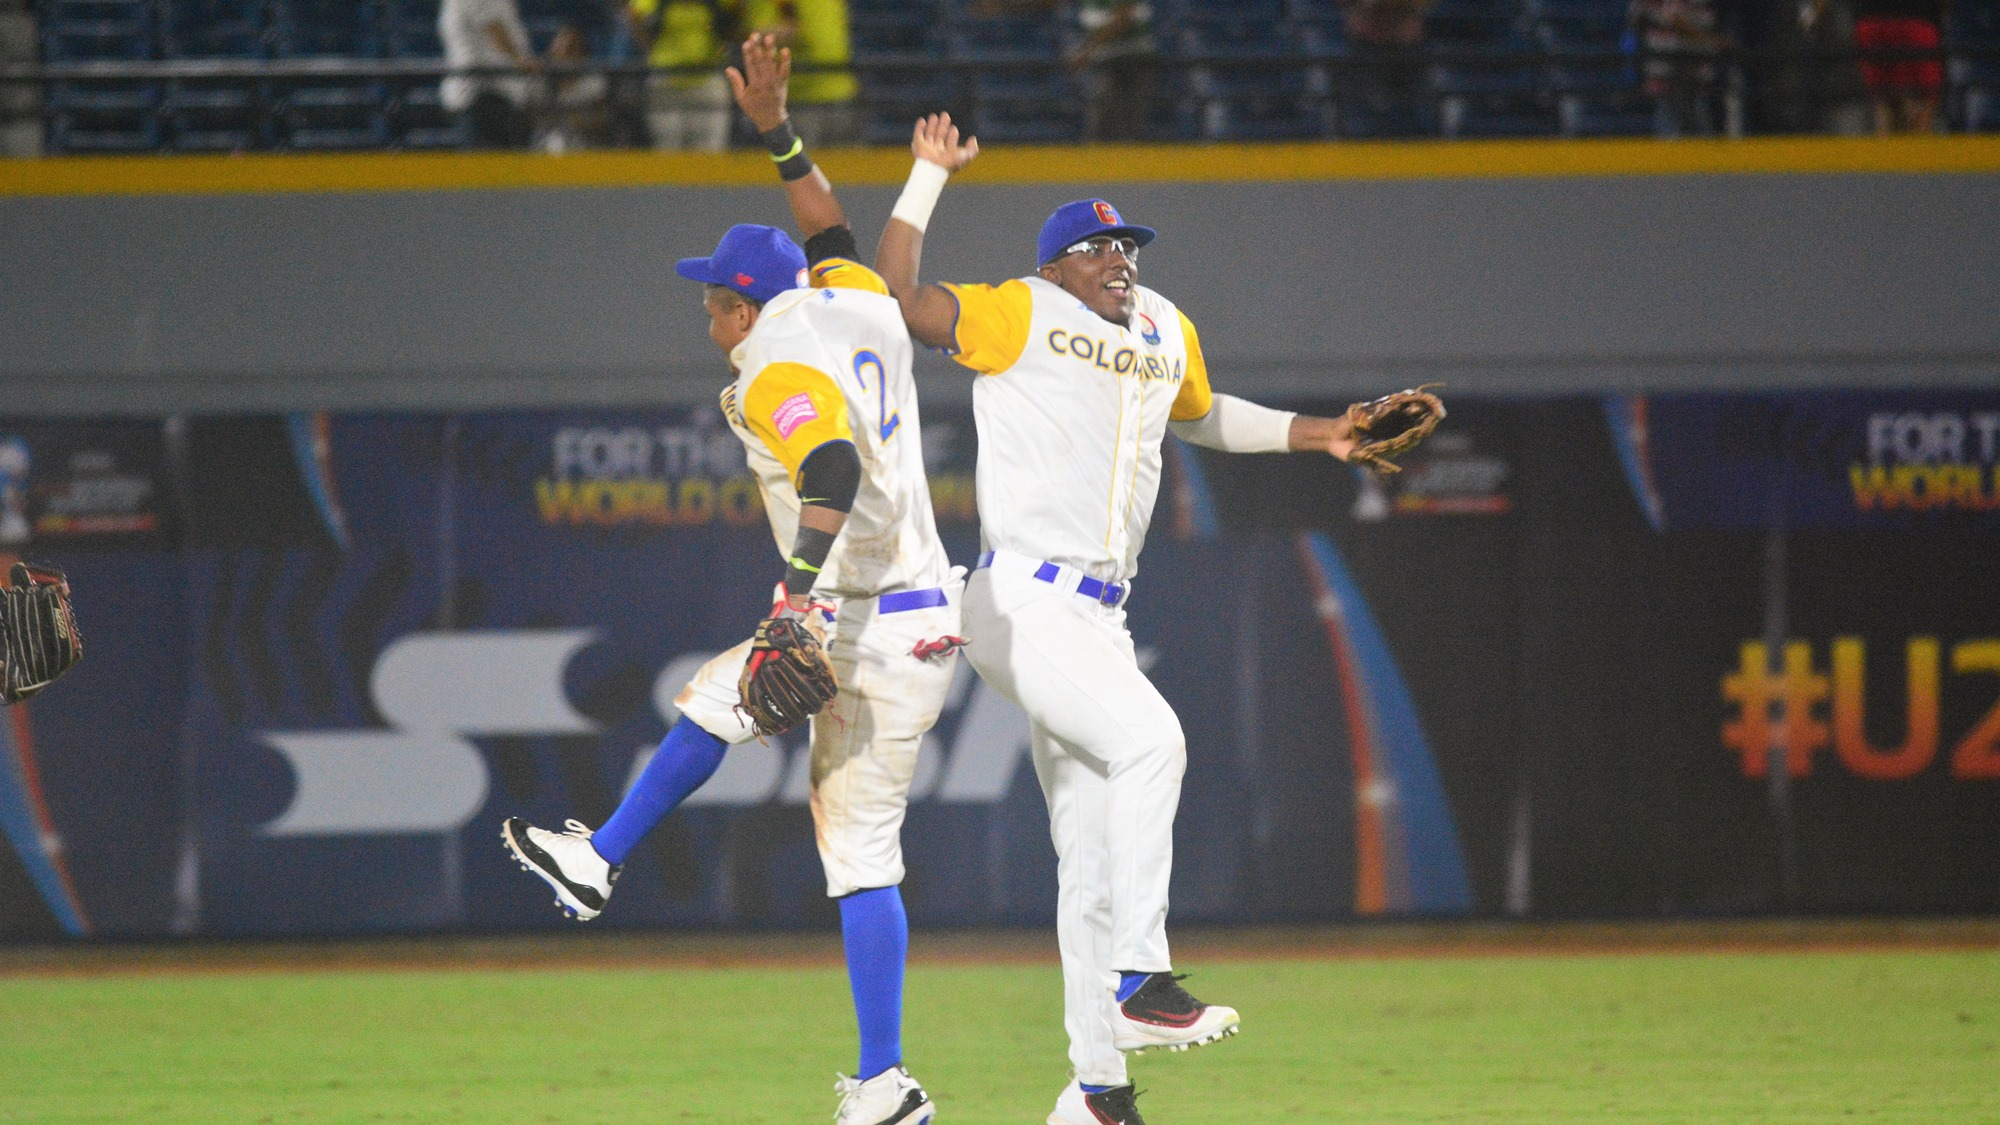 Milton Ramos and Bryan Perez celebrate after the last out